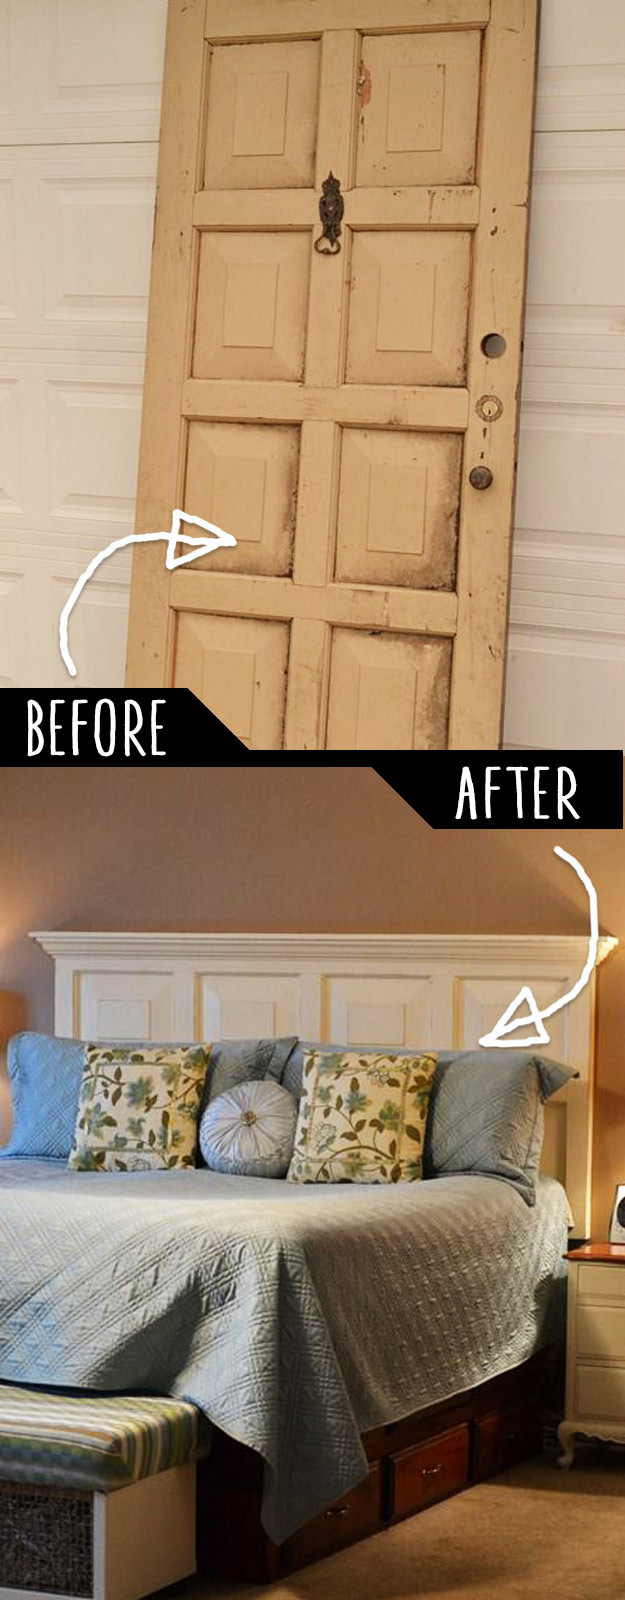 DIY Furniture Hacks   Door Headboard   Cool Ideas for Creative Do It Yourself Furniture Made From Things You Might Not Expect -